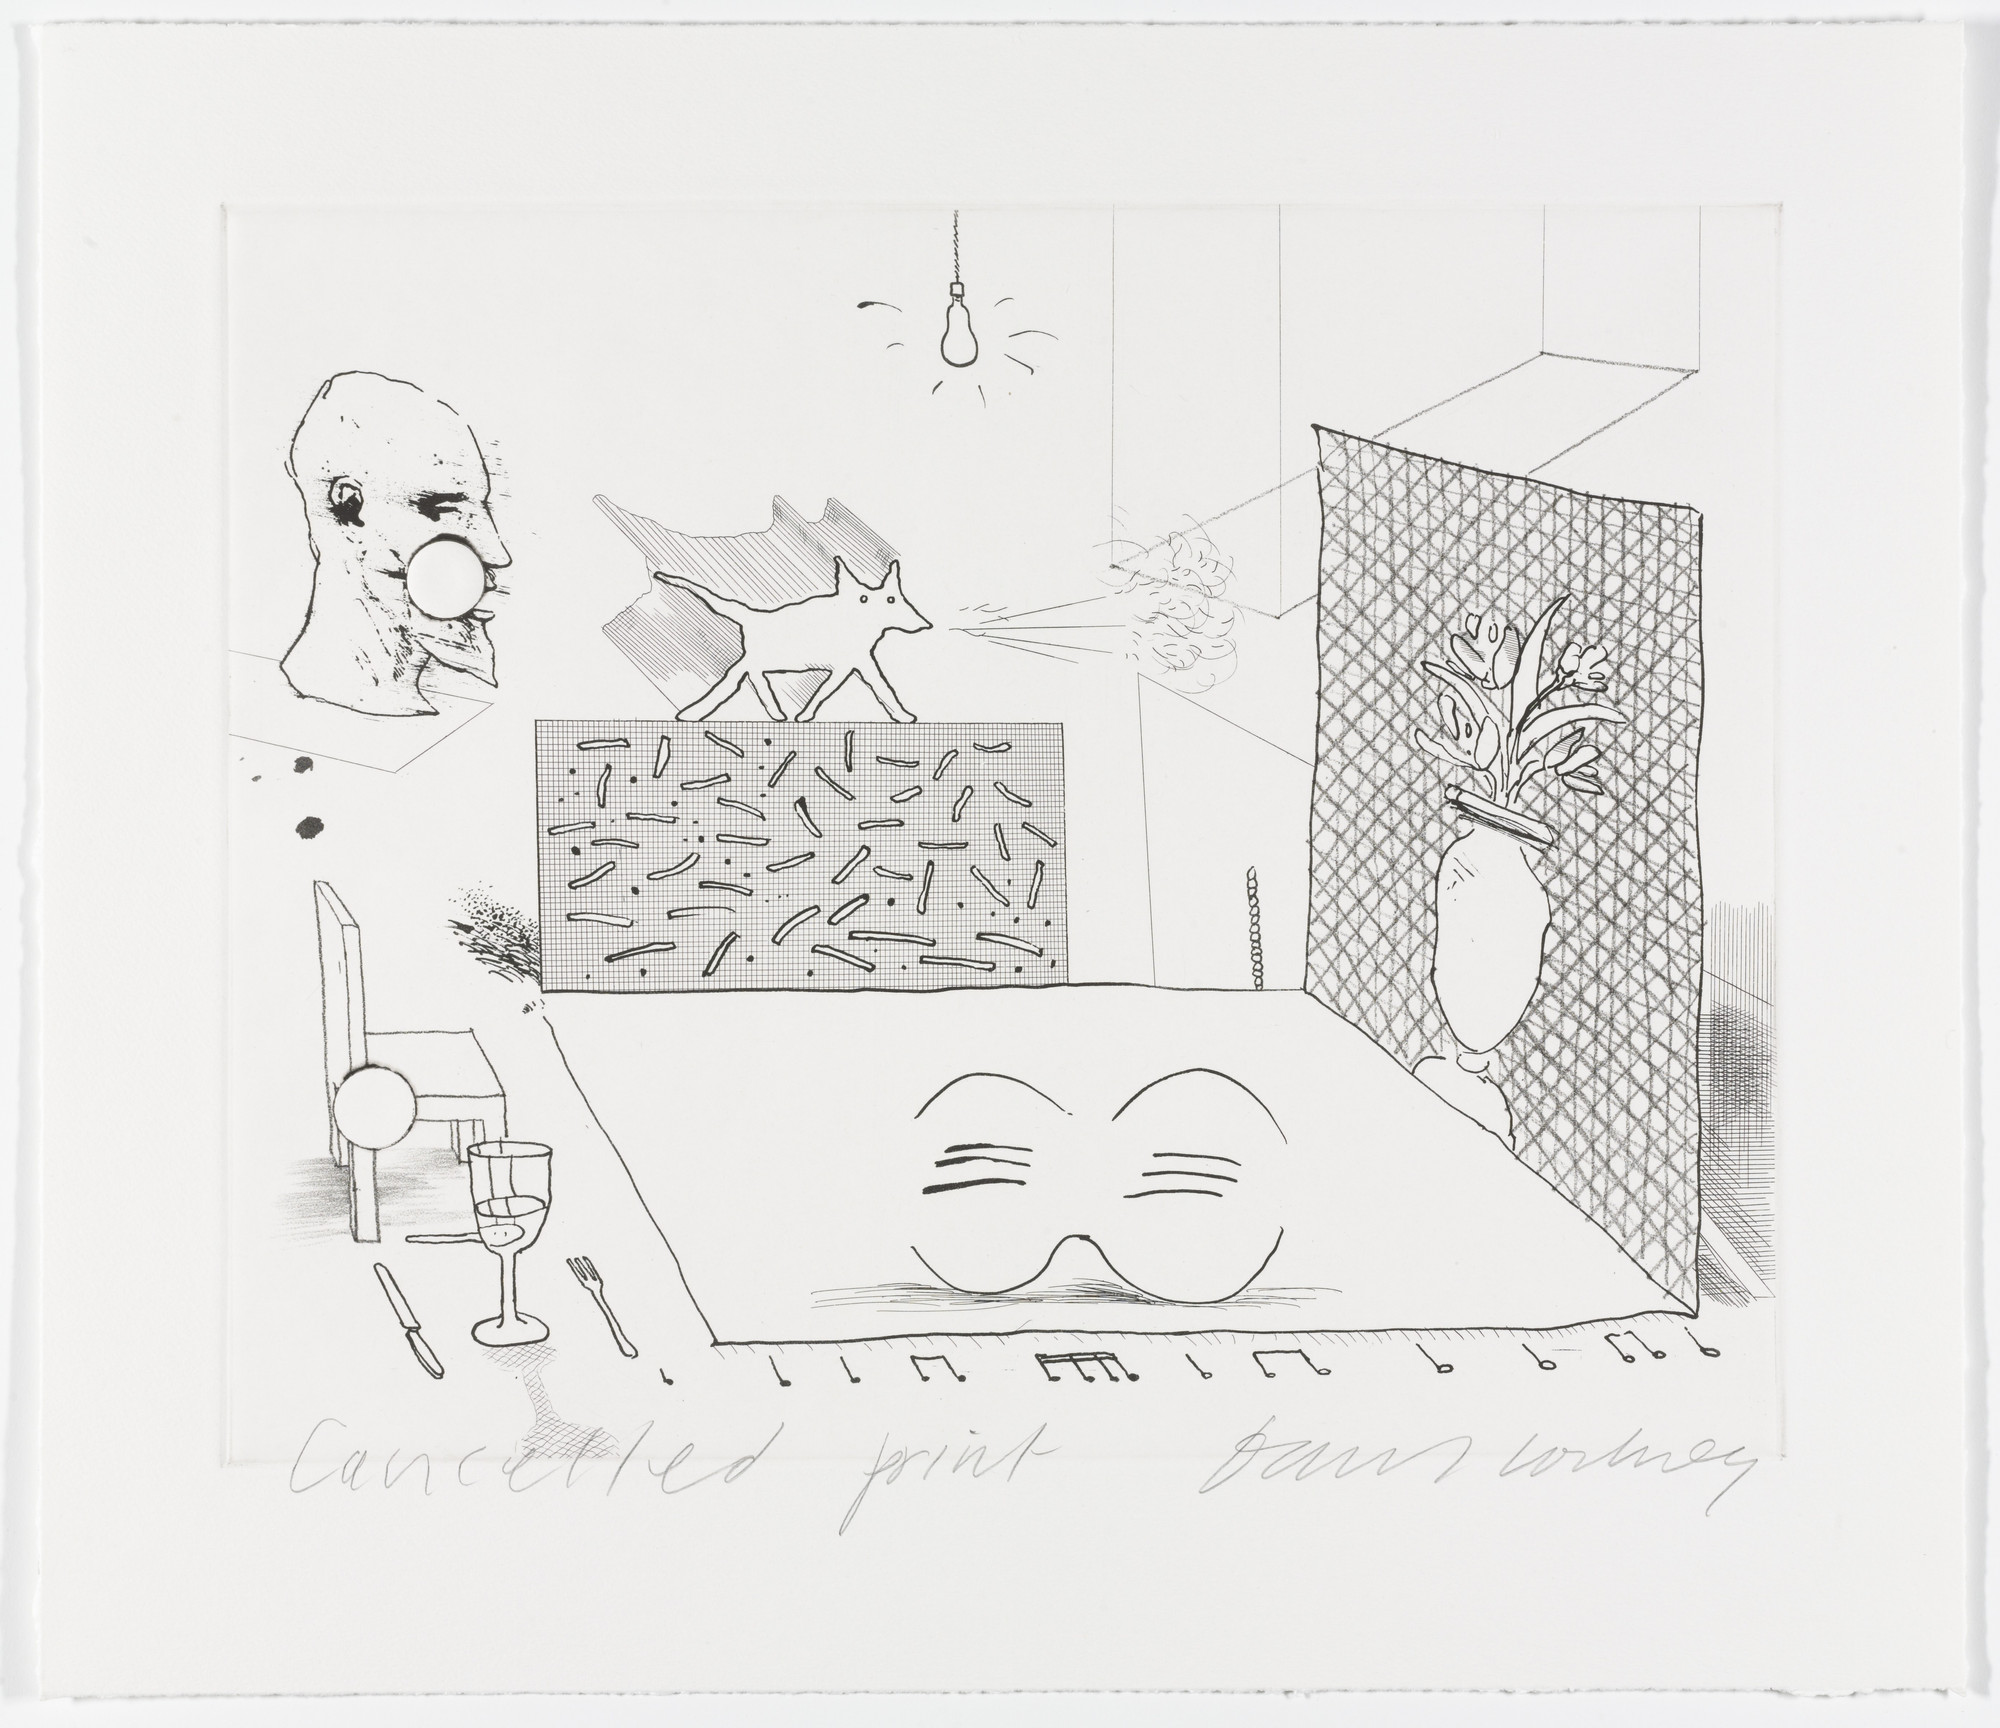 David Hockney. Cancellation proof for Discord Merely Magnifies from The Blue Guitar. 1977